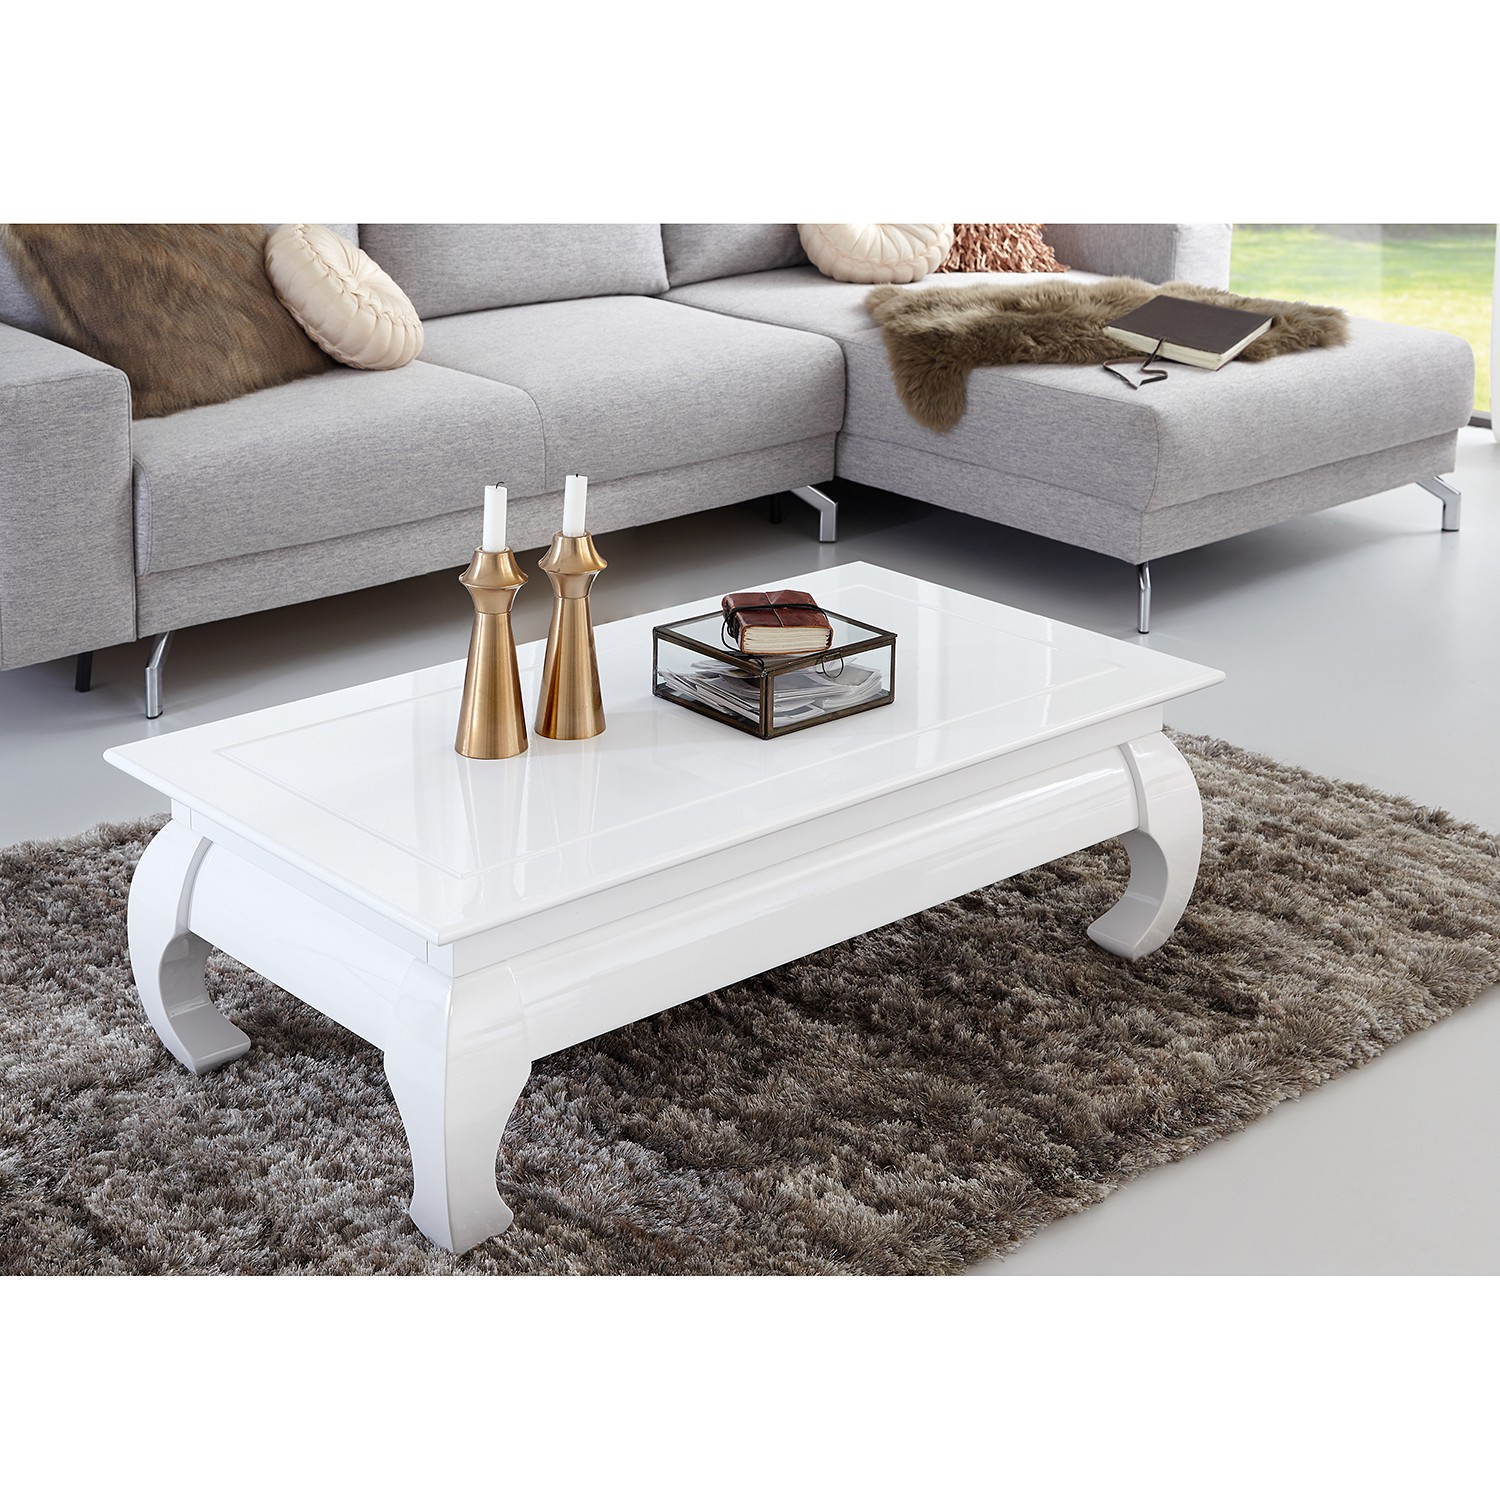 Table basse Coyle